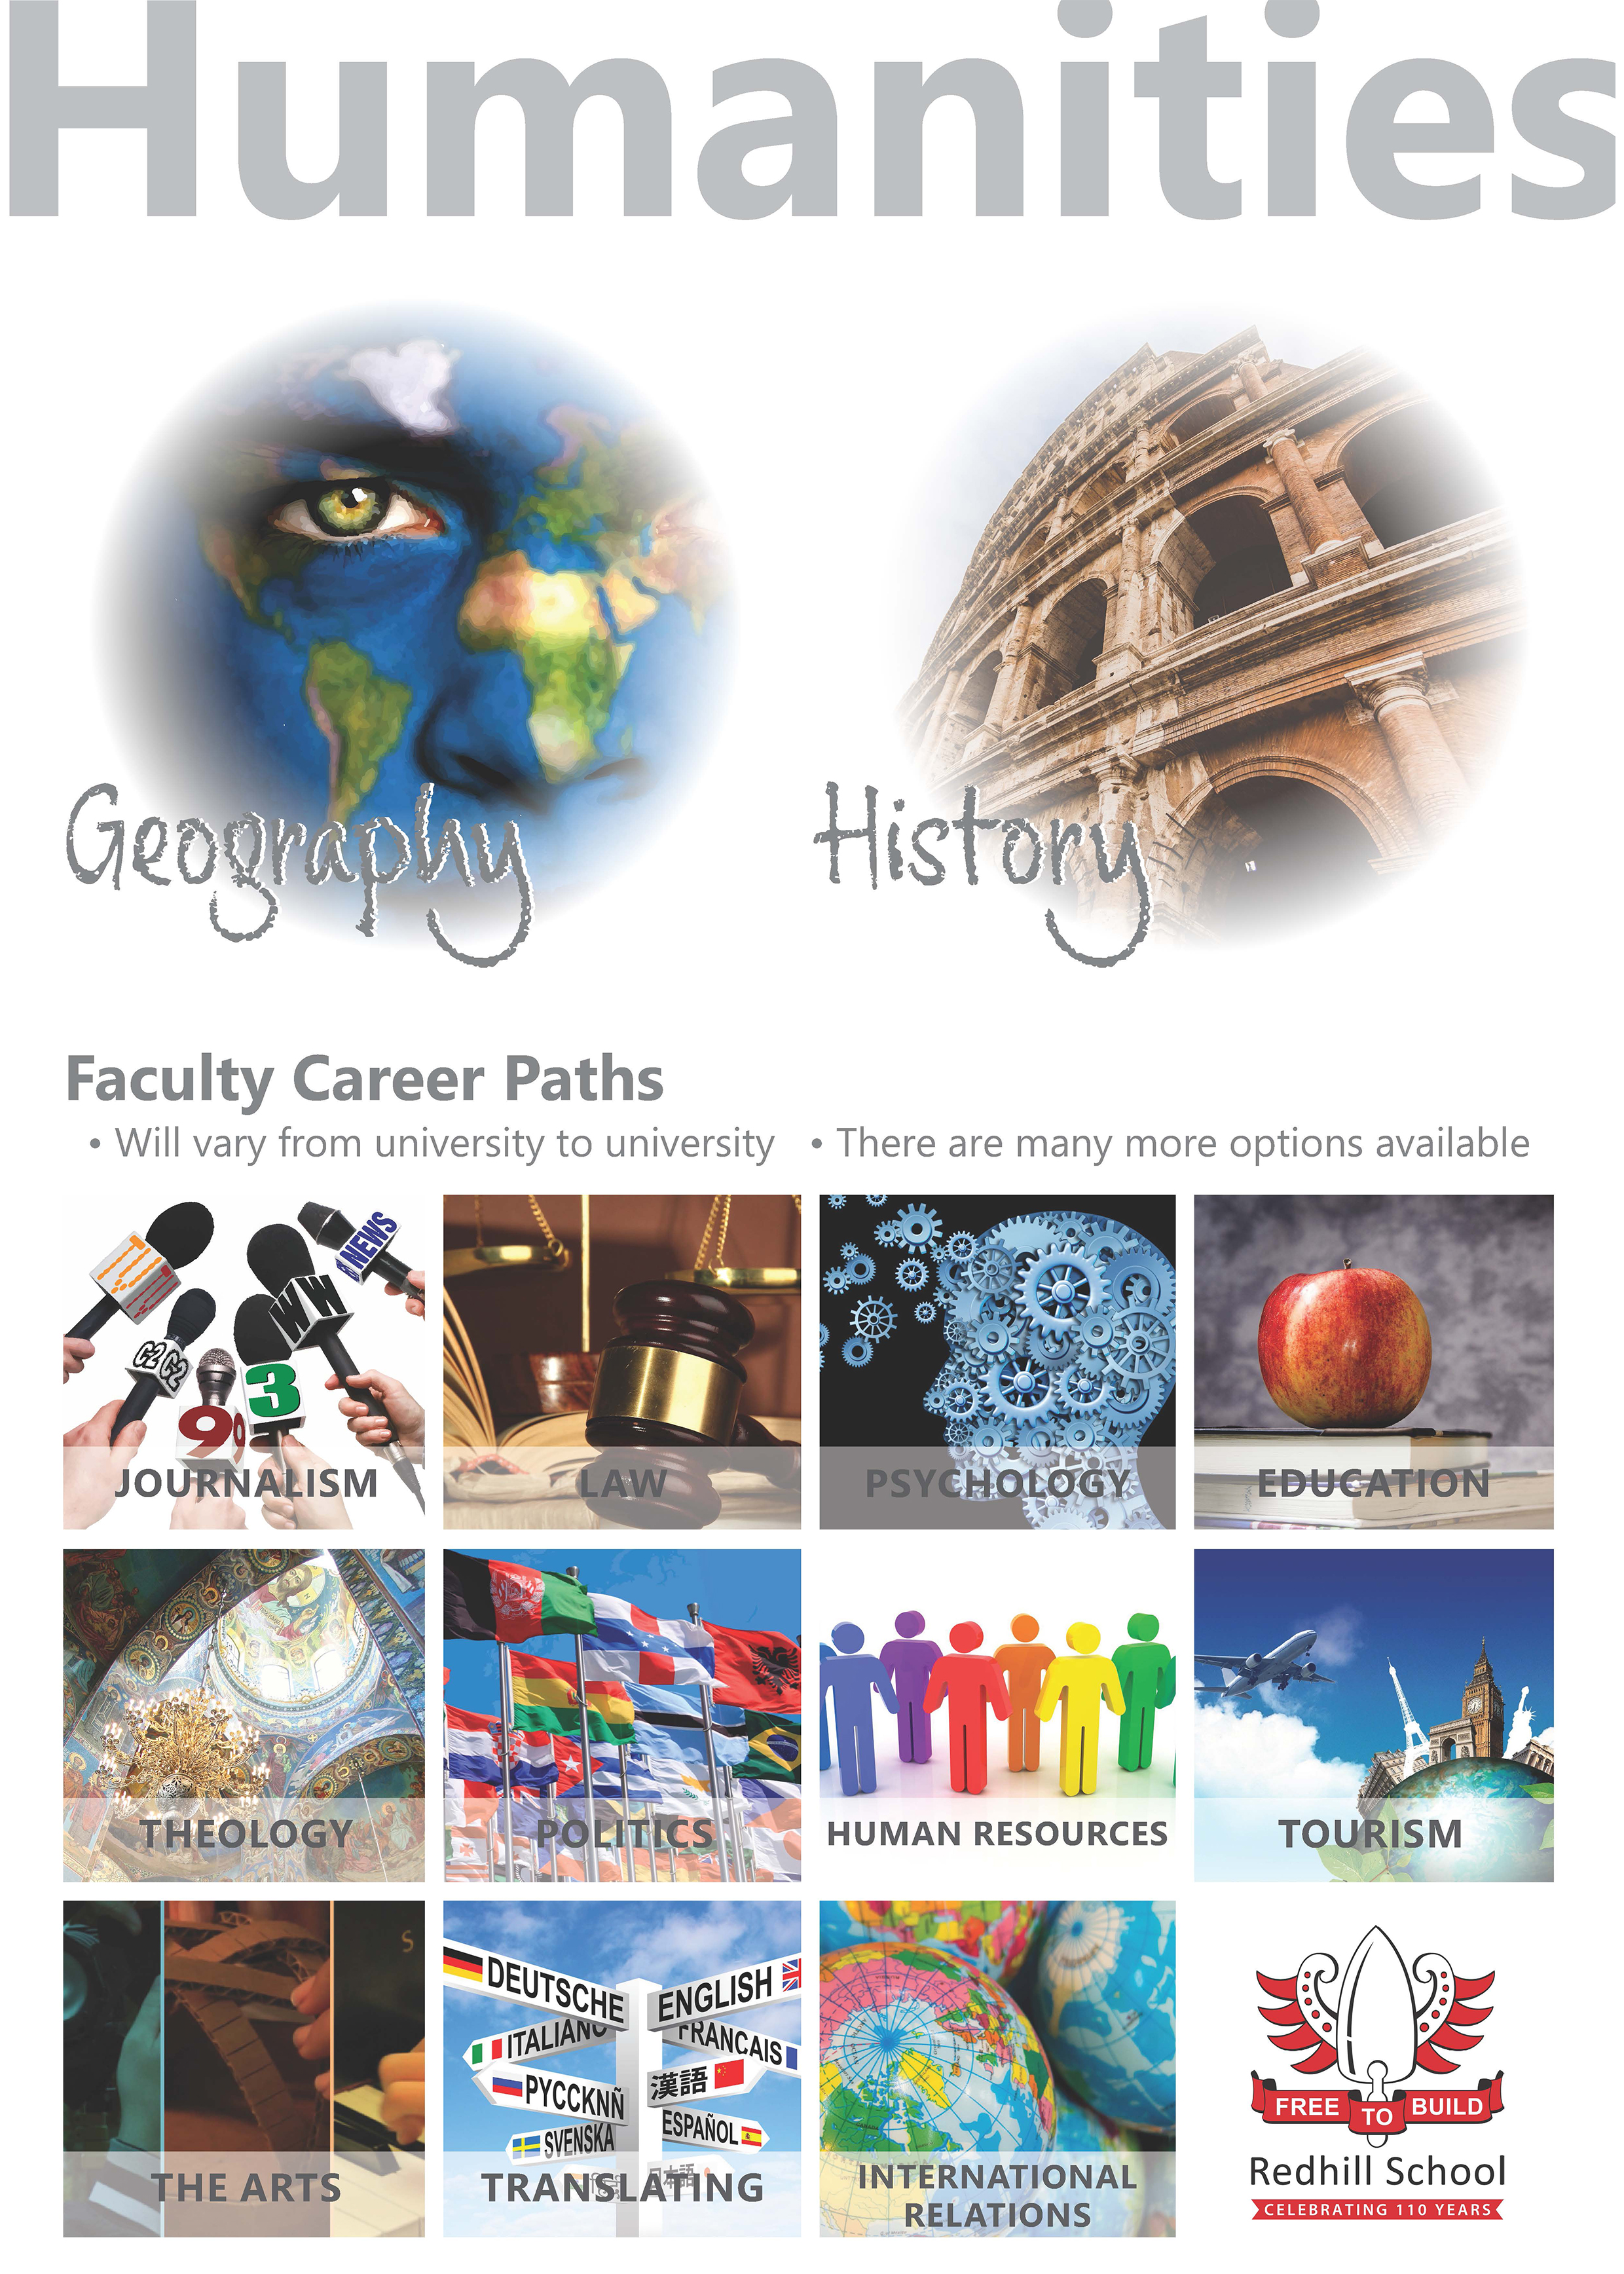 Humanities - Faculty Career Paths